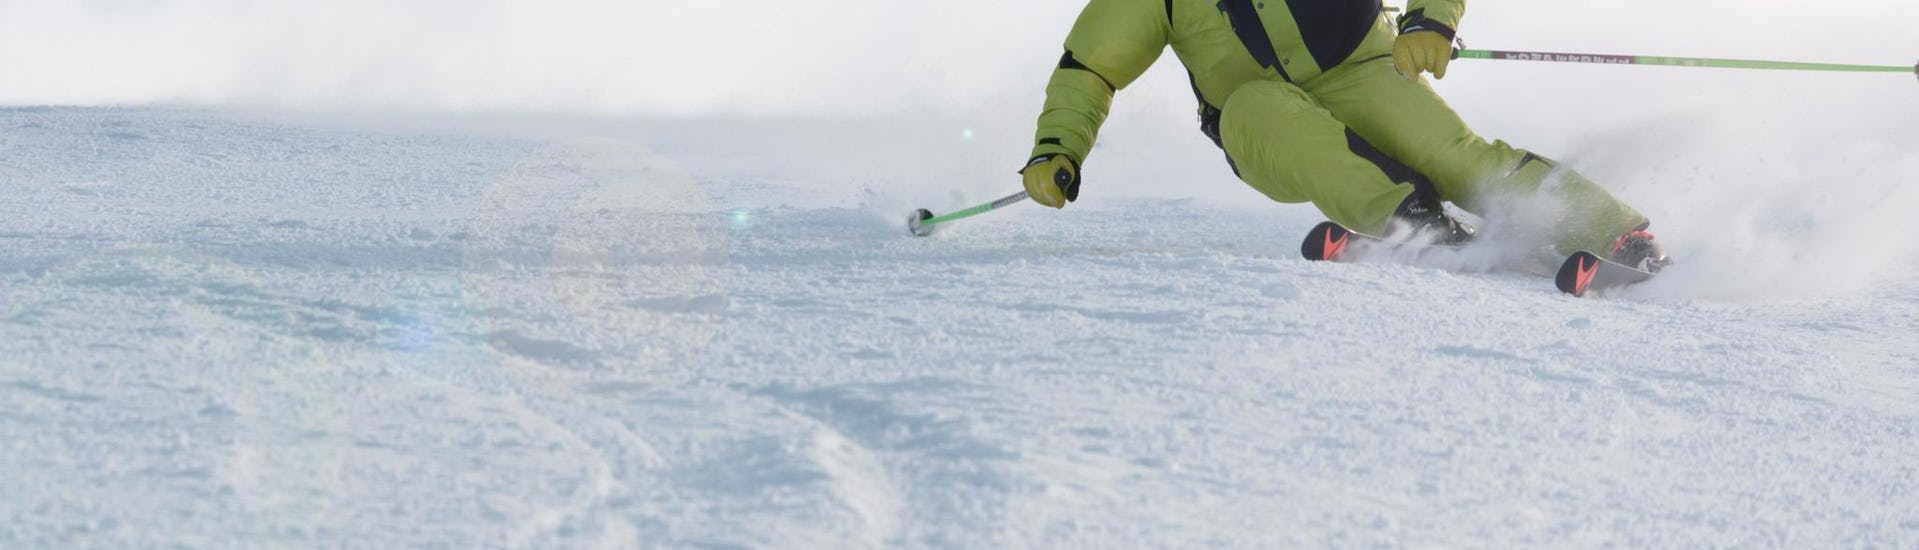 "Private Ski Lessons for Adults ""Full Day"" - All Levels"